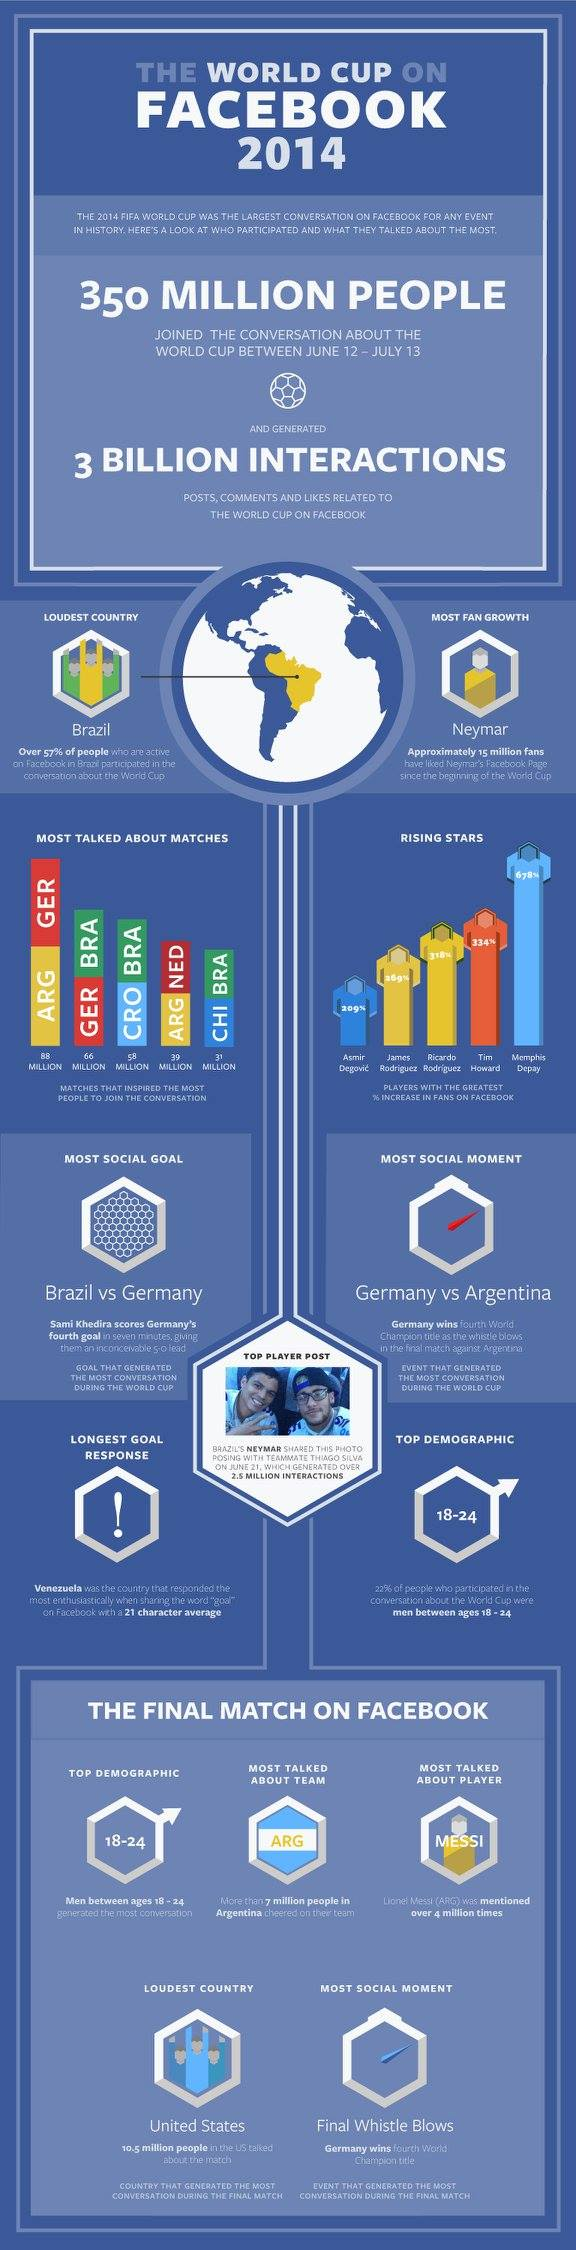 The World Cup on Facebook 2014